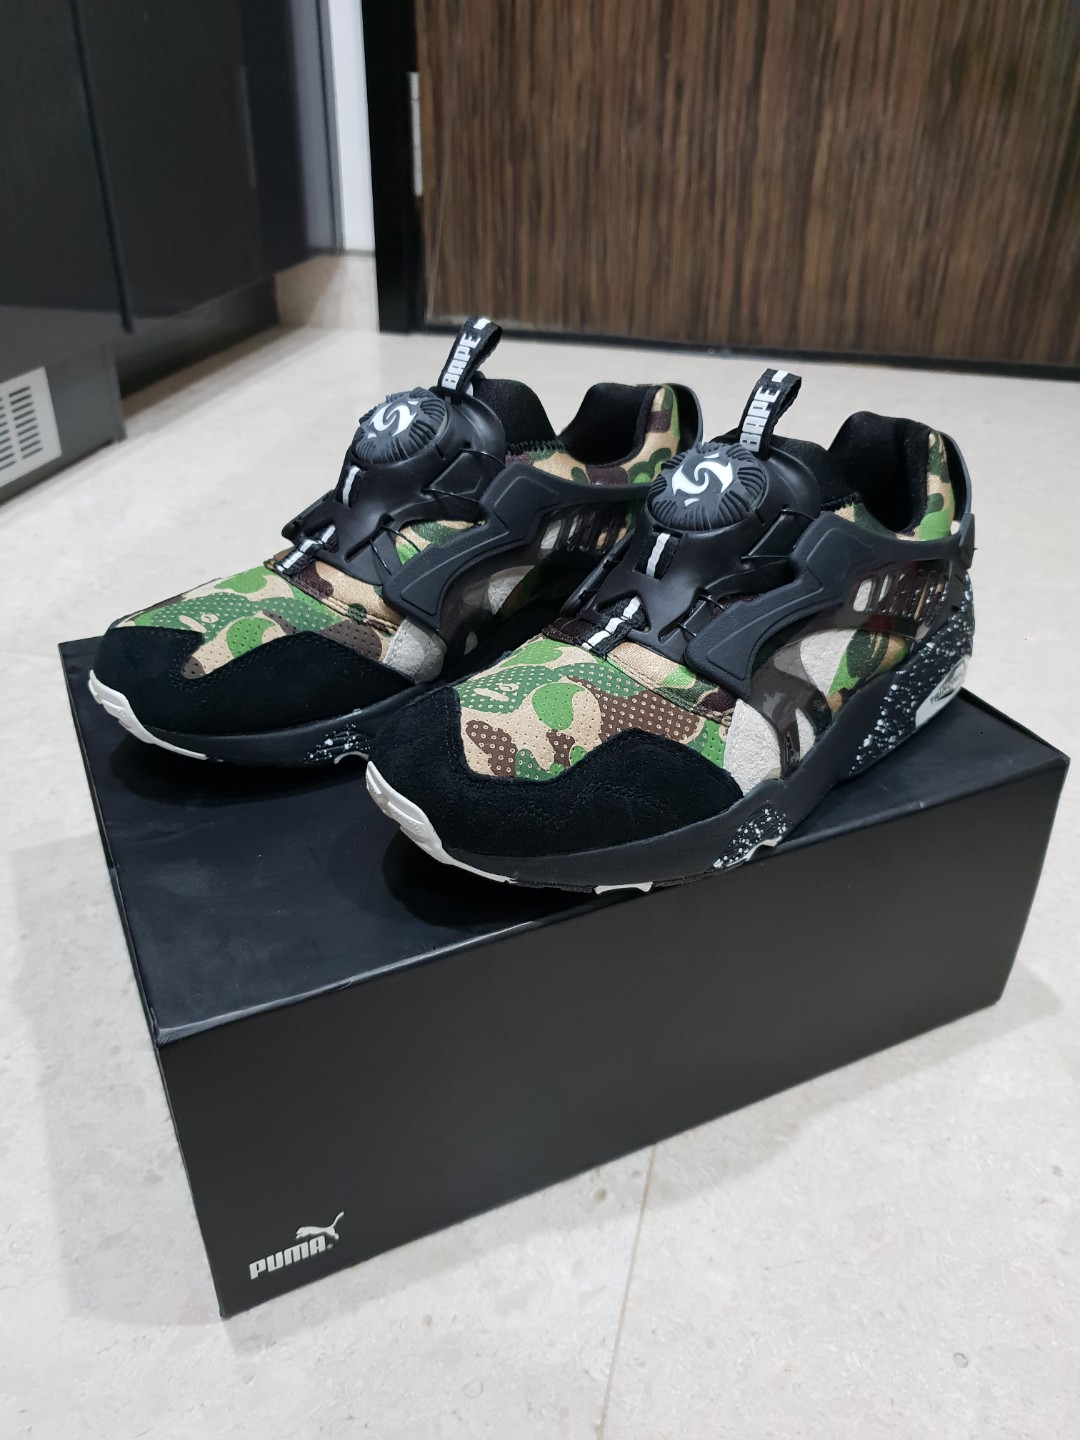 BAPE x Puma Disc Blaze. Brand new. Pls contact 91450272 to deal ... a24c54270